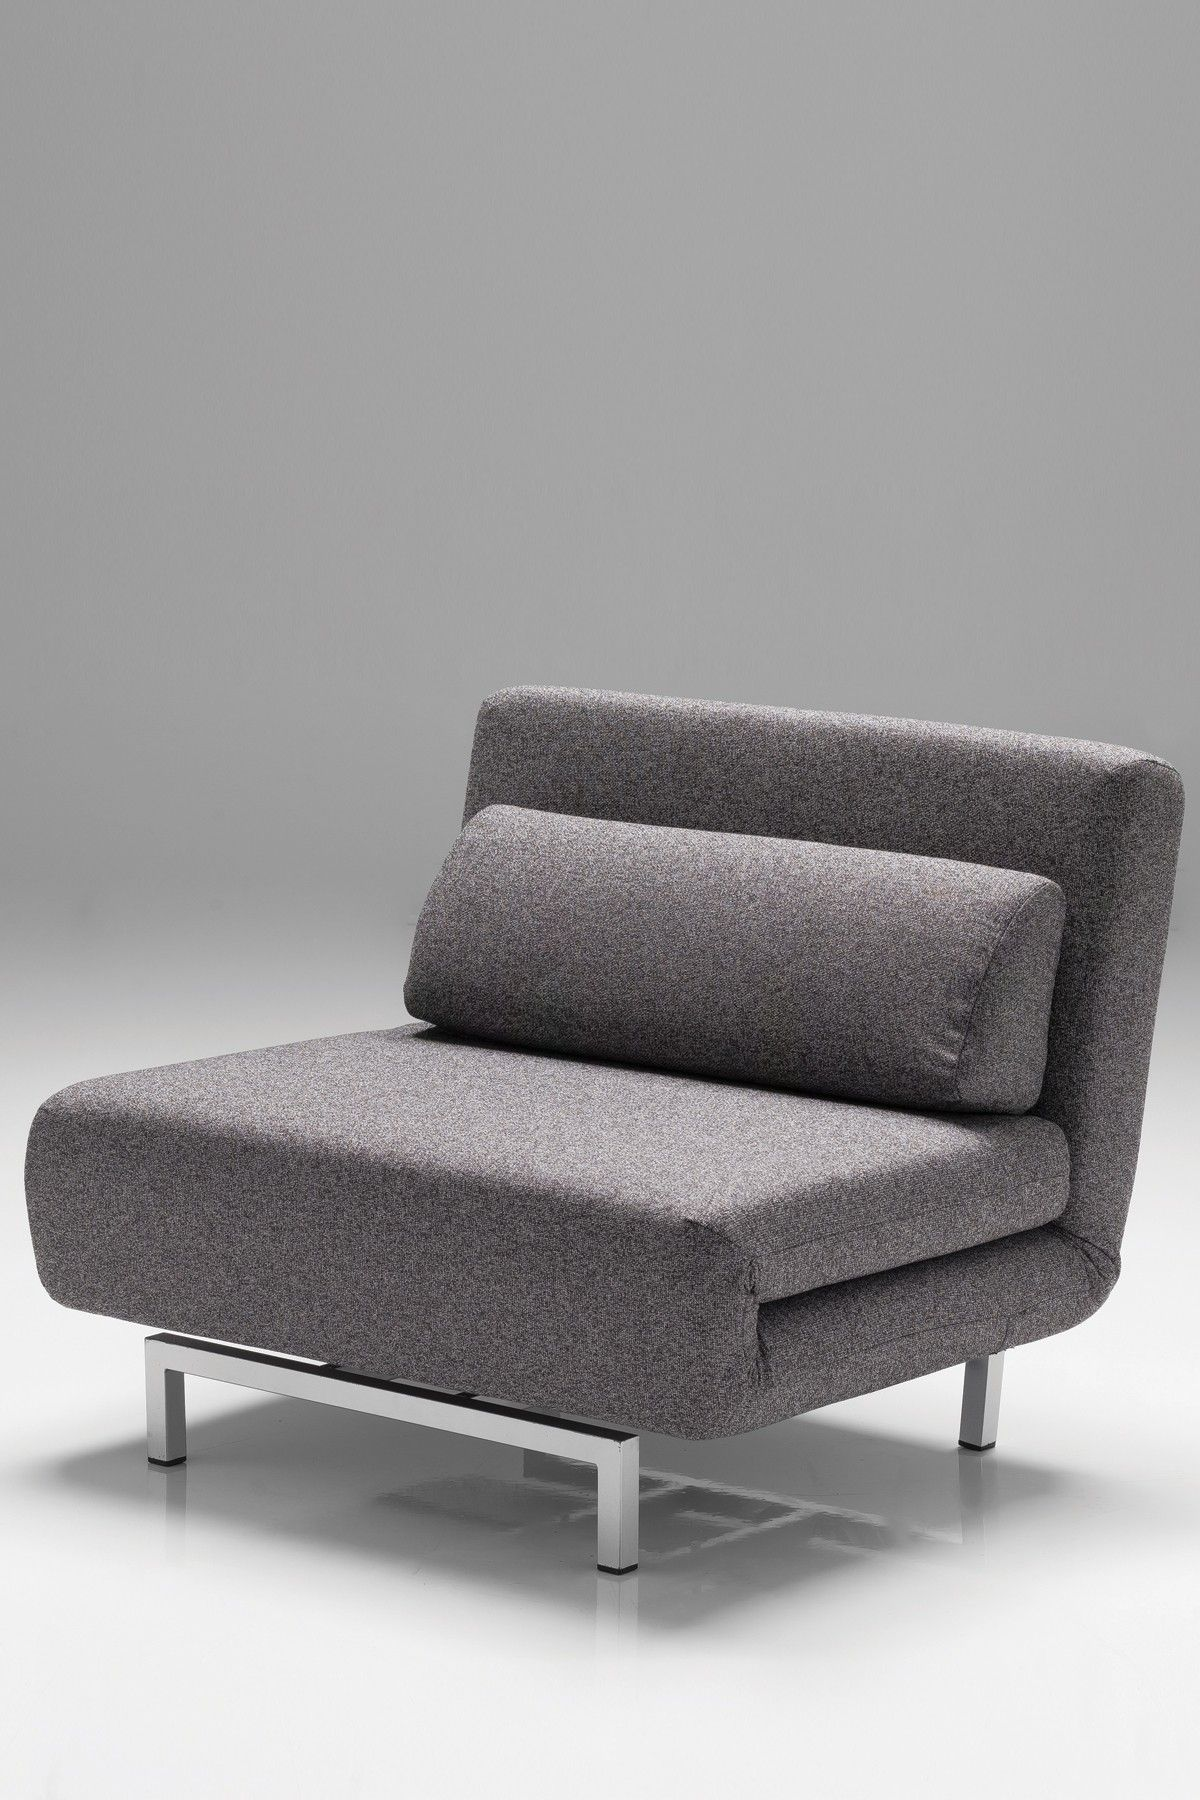 Mobital Iso Convertible Chair Bed Charcoal Tweed